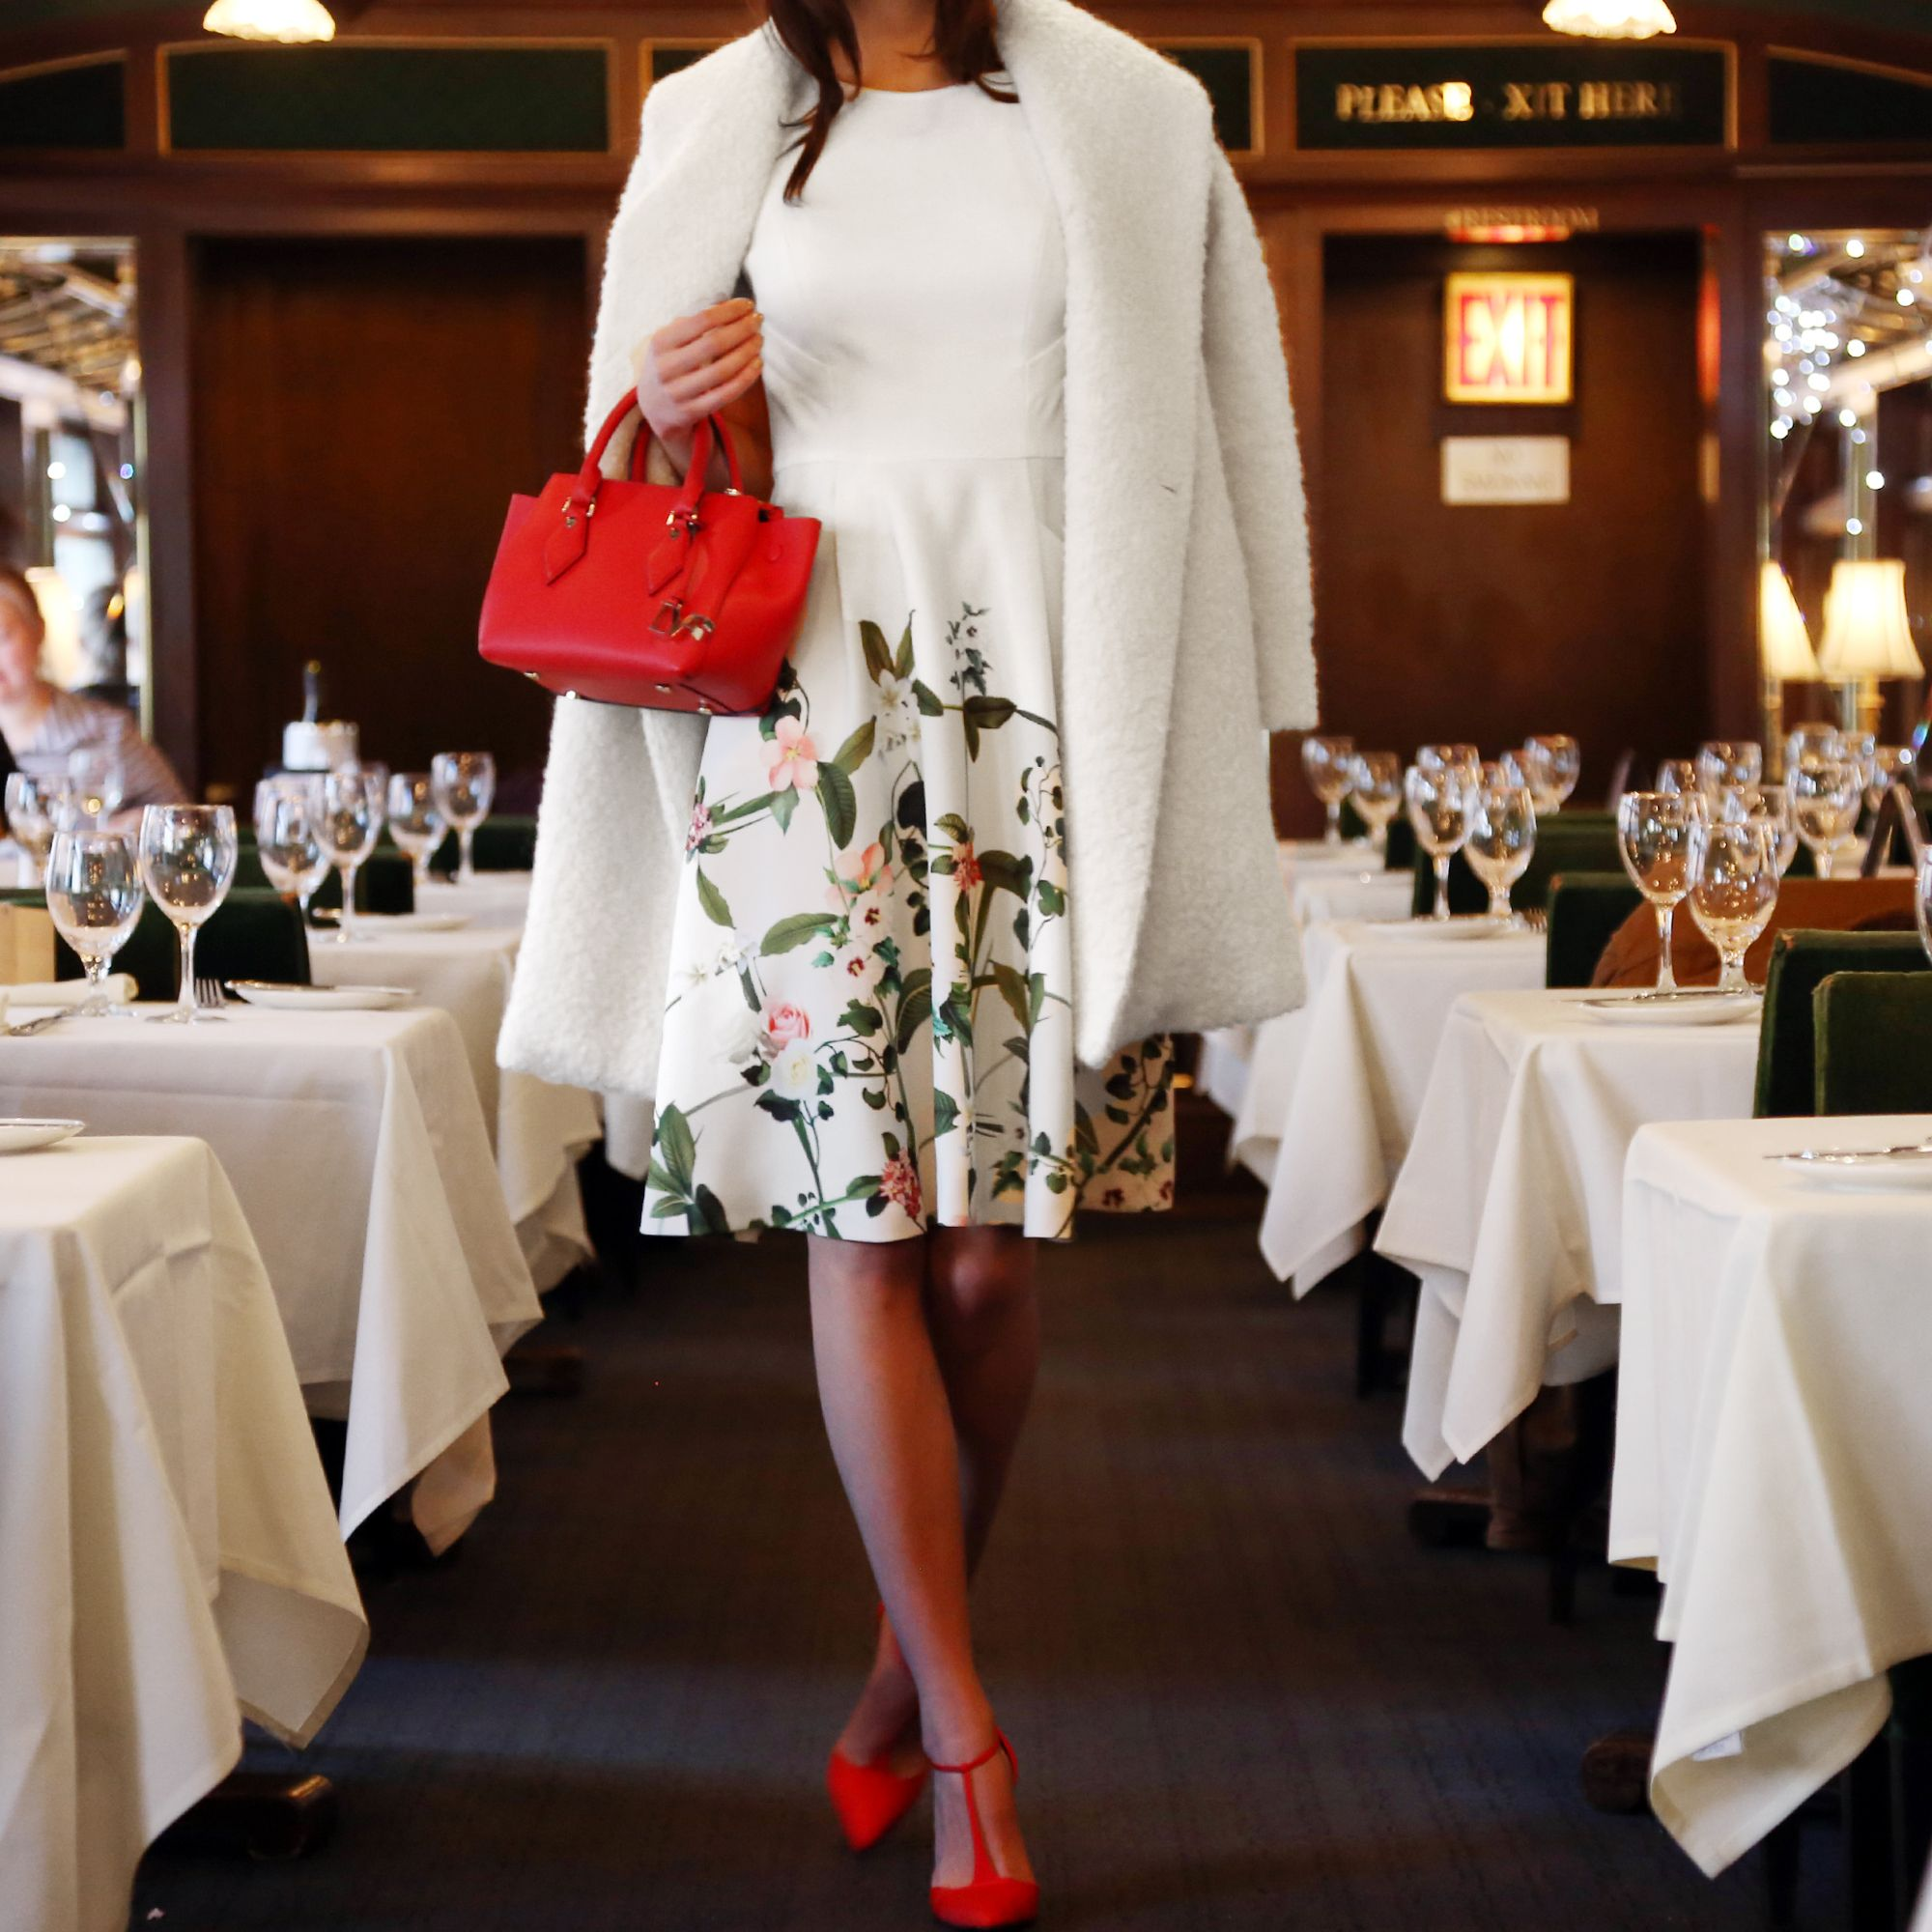 Lunch at Le Train Bleu. Who's coming? (CC: Vince, DVF, Ted Baker, SJP)